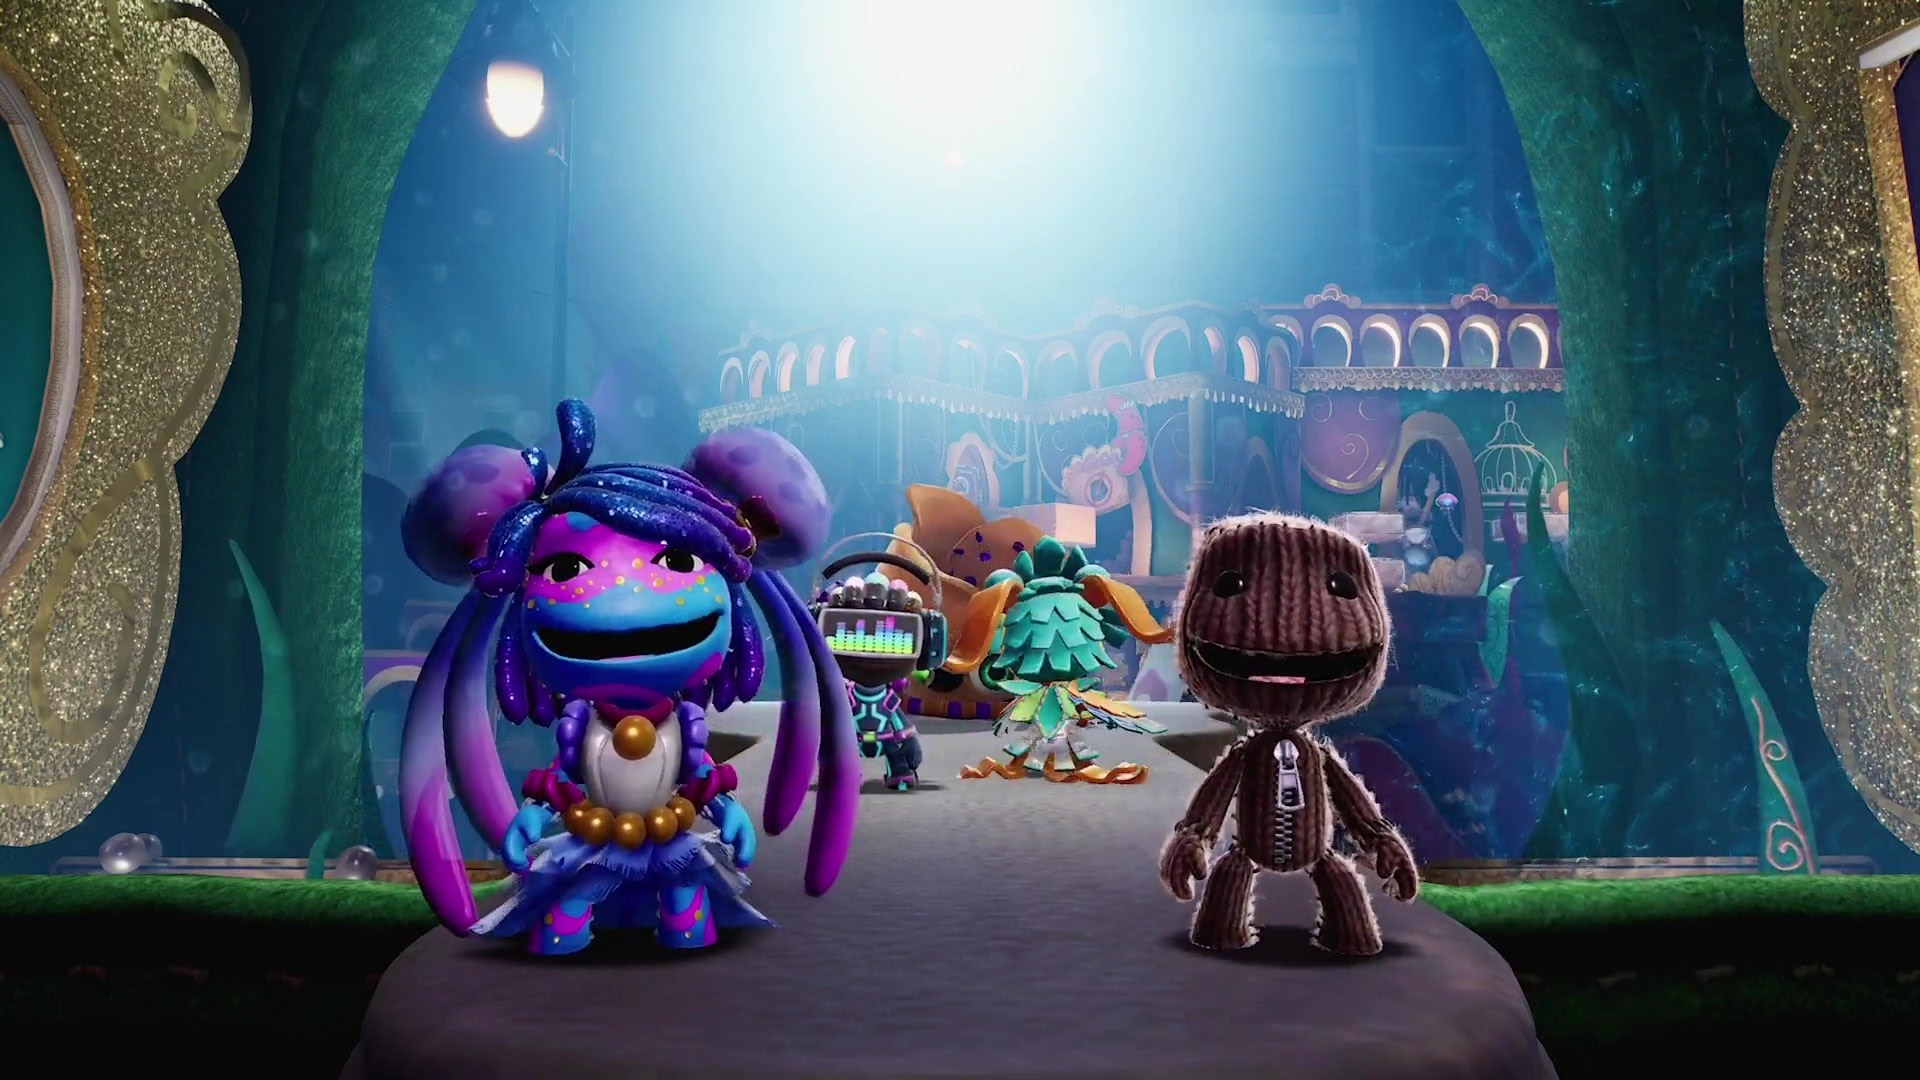 Sackboy: A Big Adventure' is a LittleBigPlanet spin-off for PS5 | Engadget